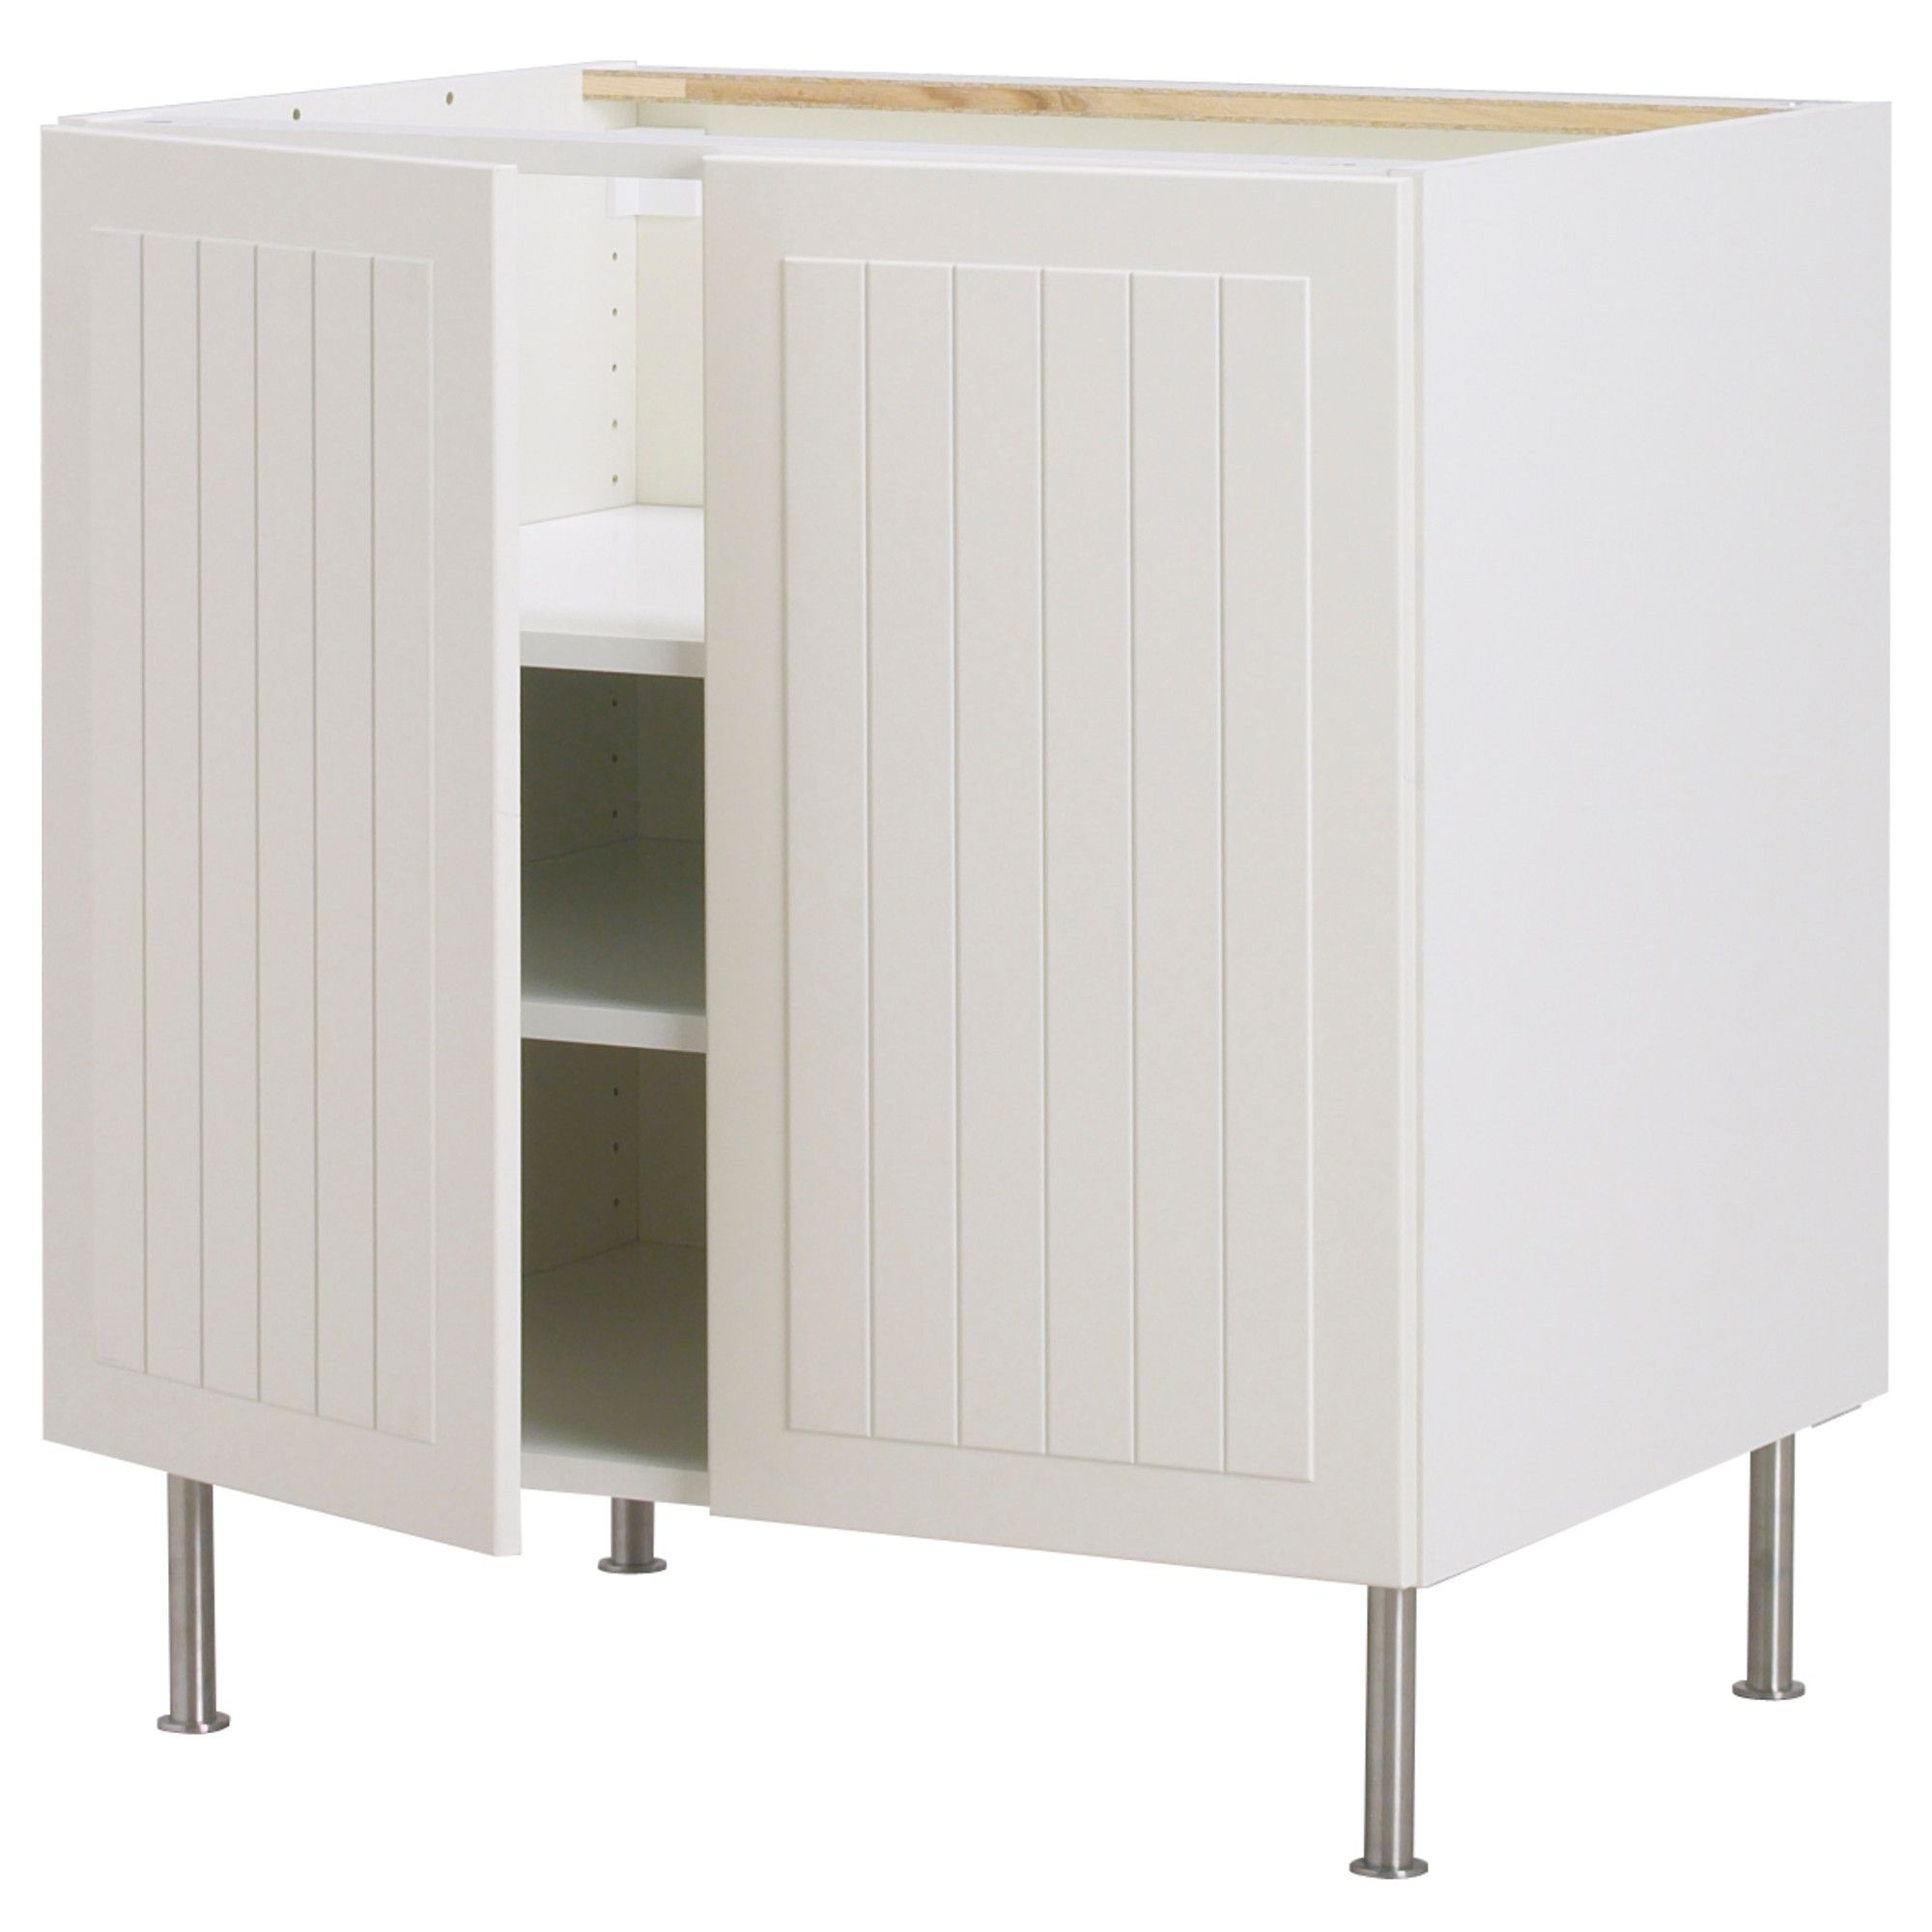 AKURUM Base cabinet w shelf/2 doors - white, Ståt white, 24 ...